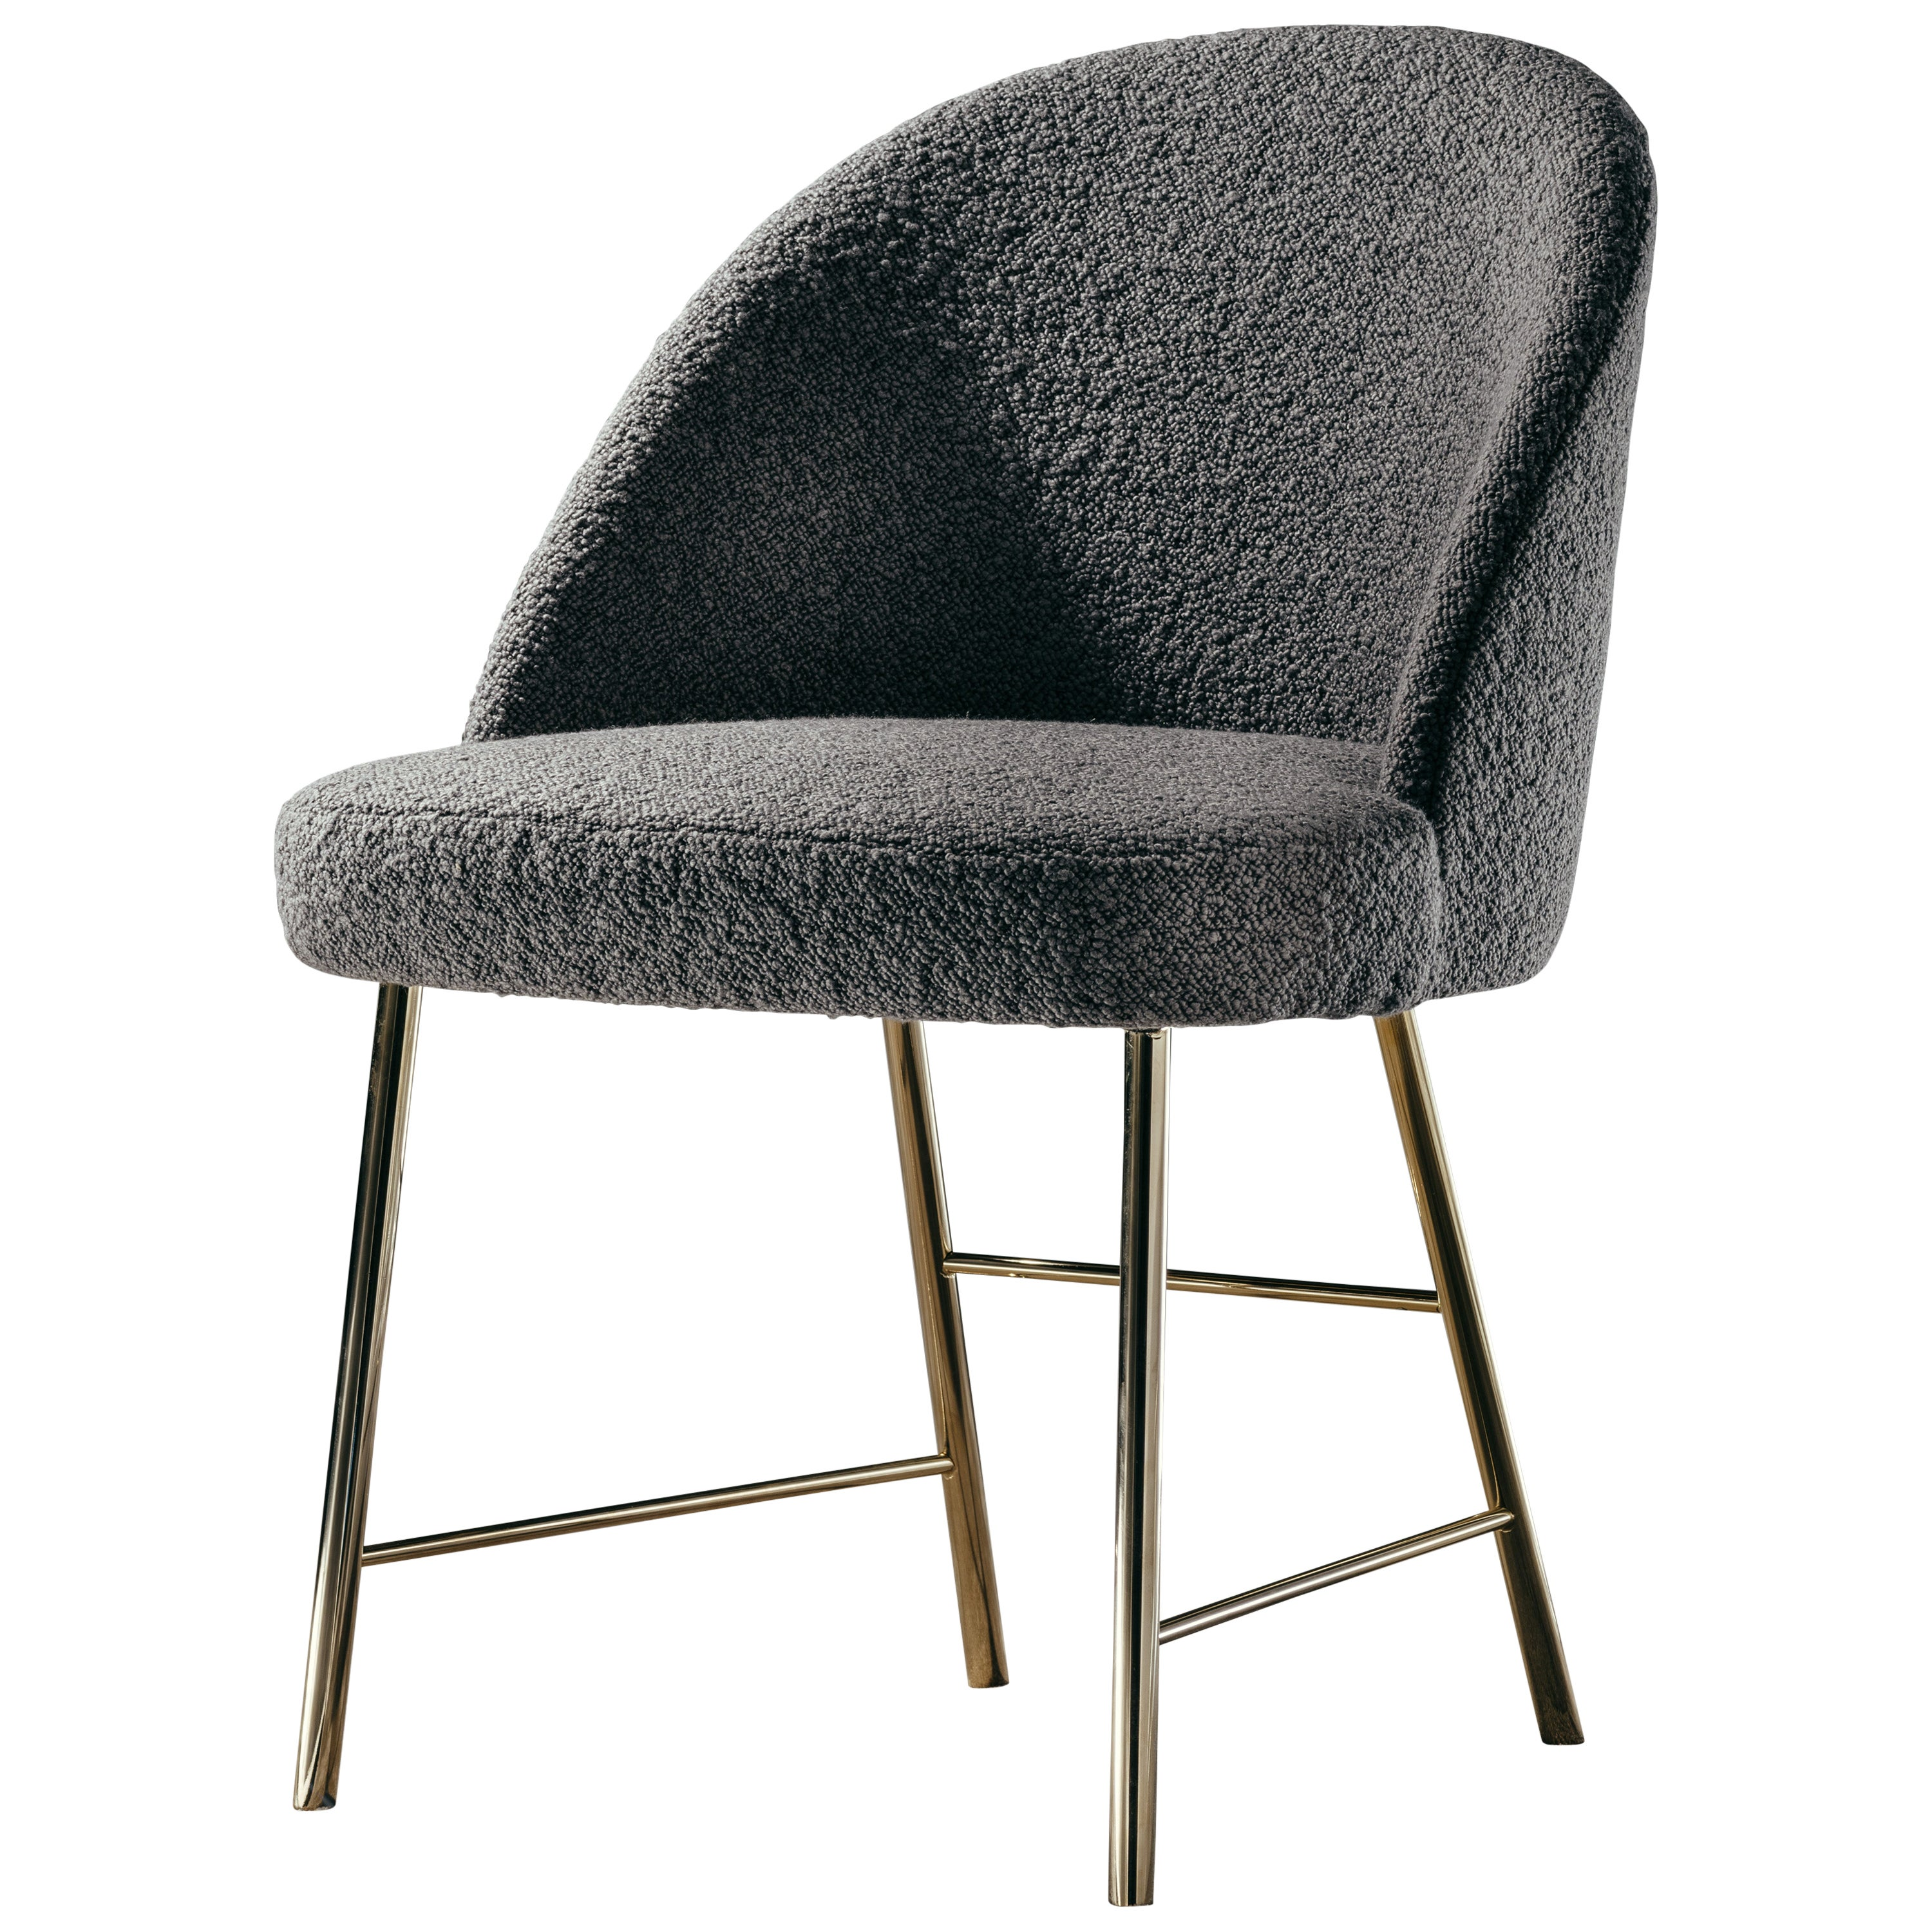 Avec Moi Chair in Boucle Fabric and Polished Brass